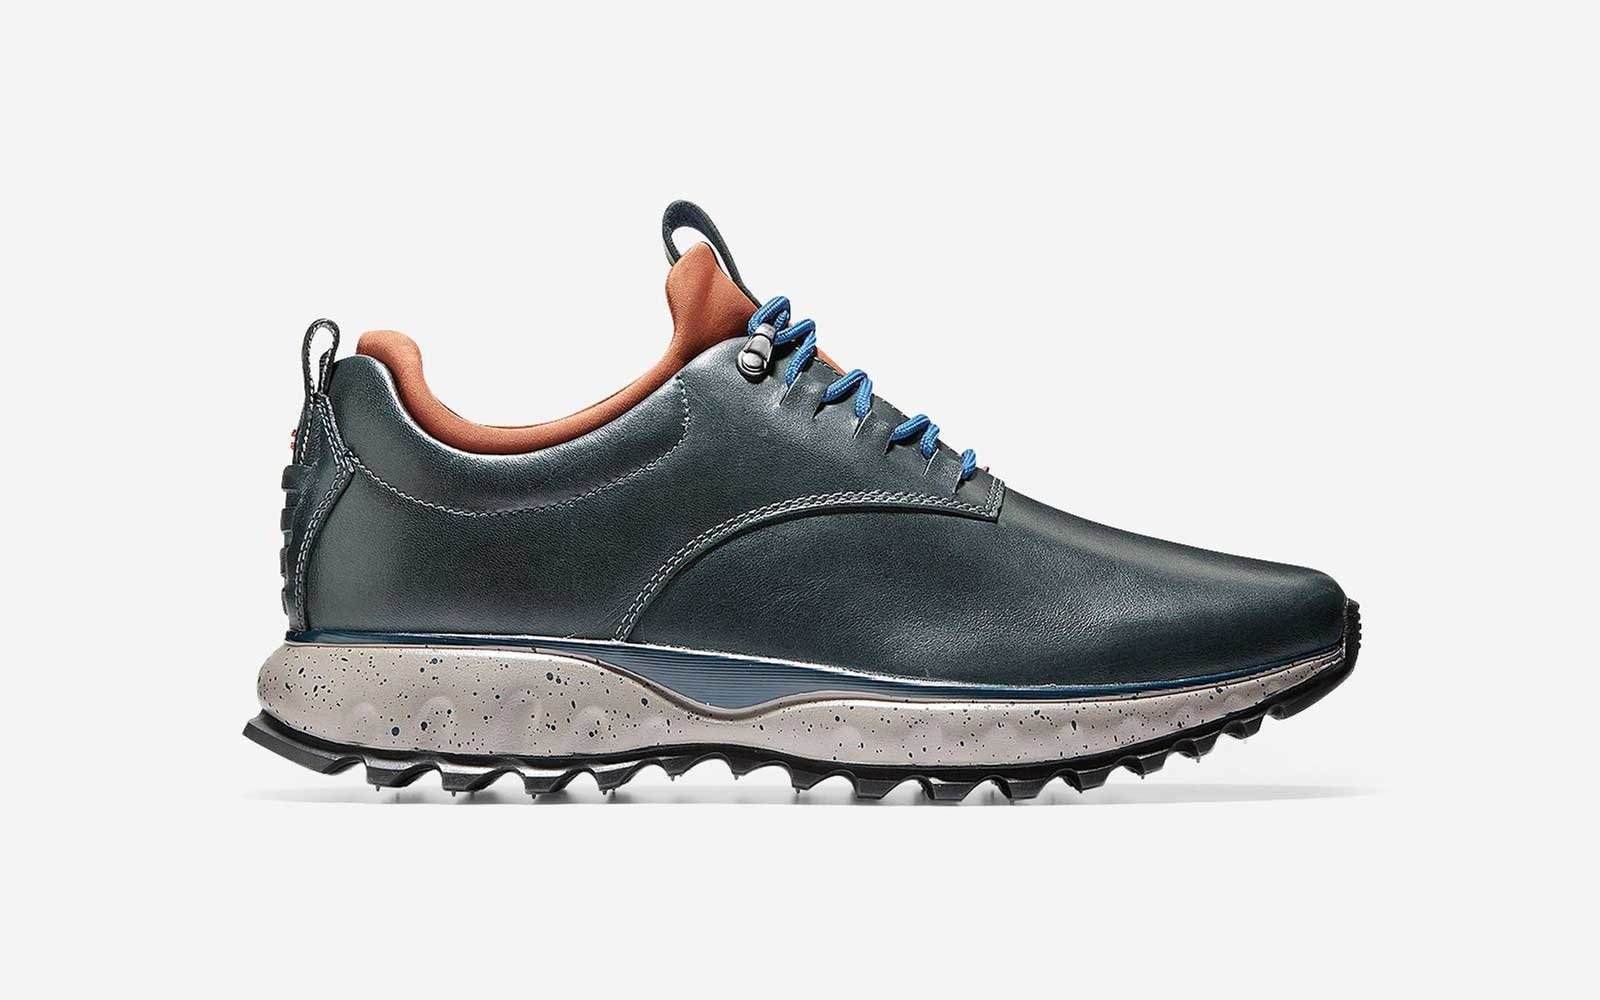 Cole Haan Men's Zerogrand All-terrain Waterproof Sneaker